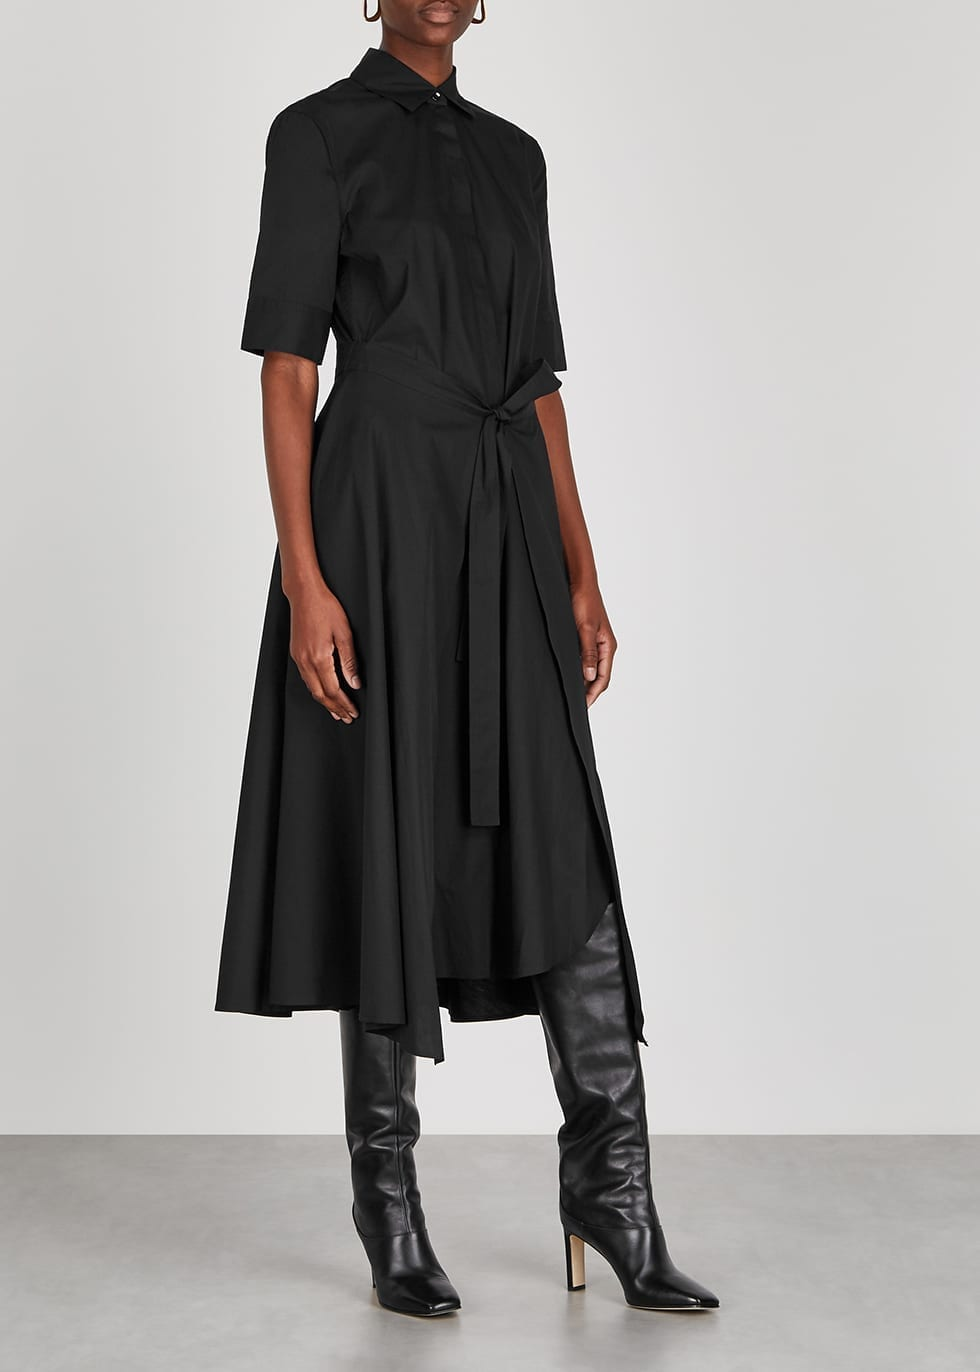 ROSETTA GETTY Black Poplin Shirt Dress